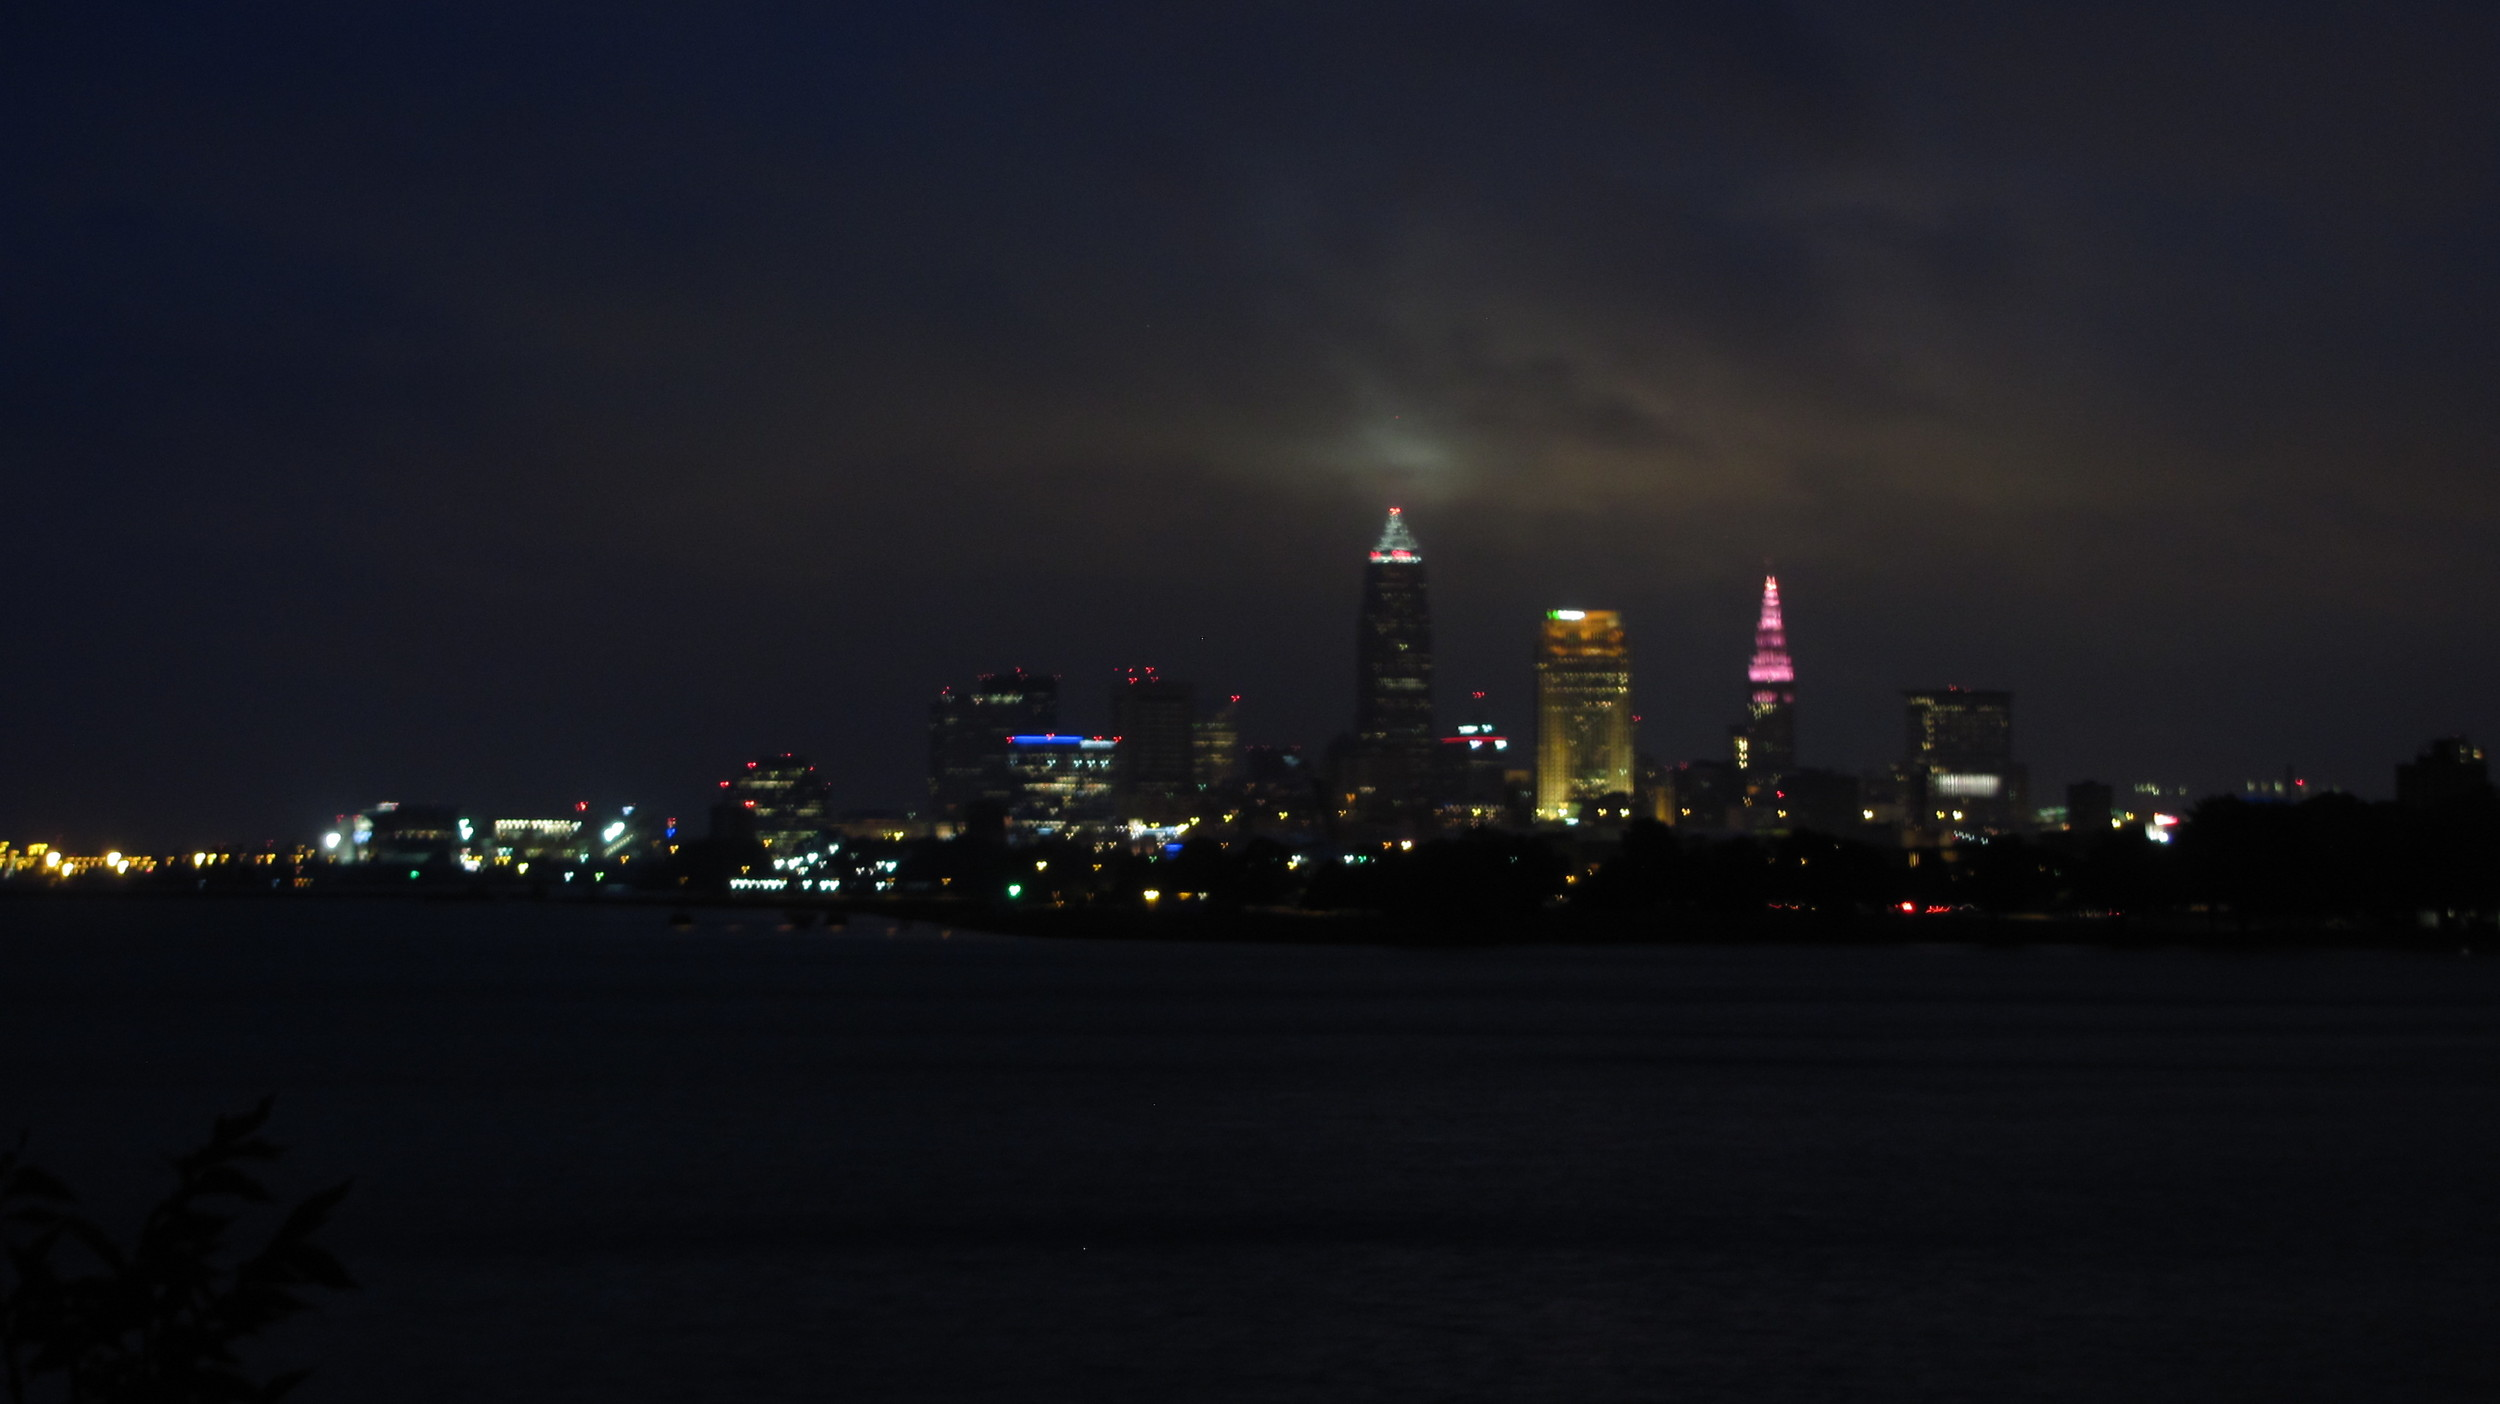 Nightime Cleveland skyline